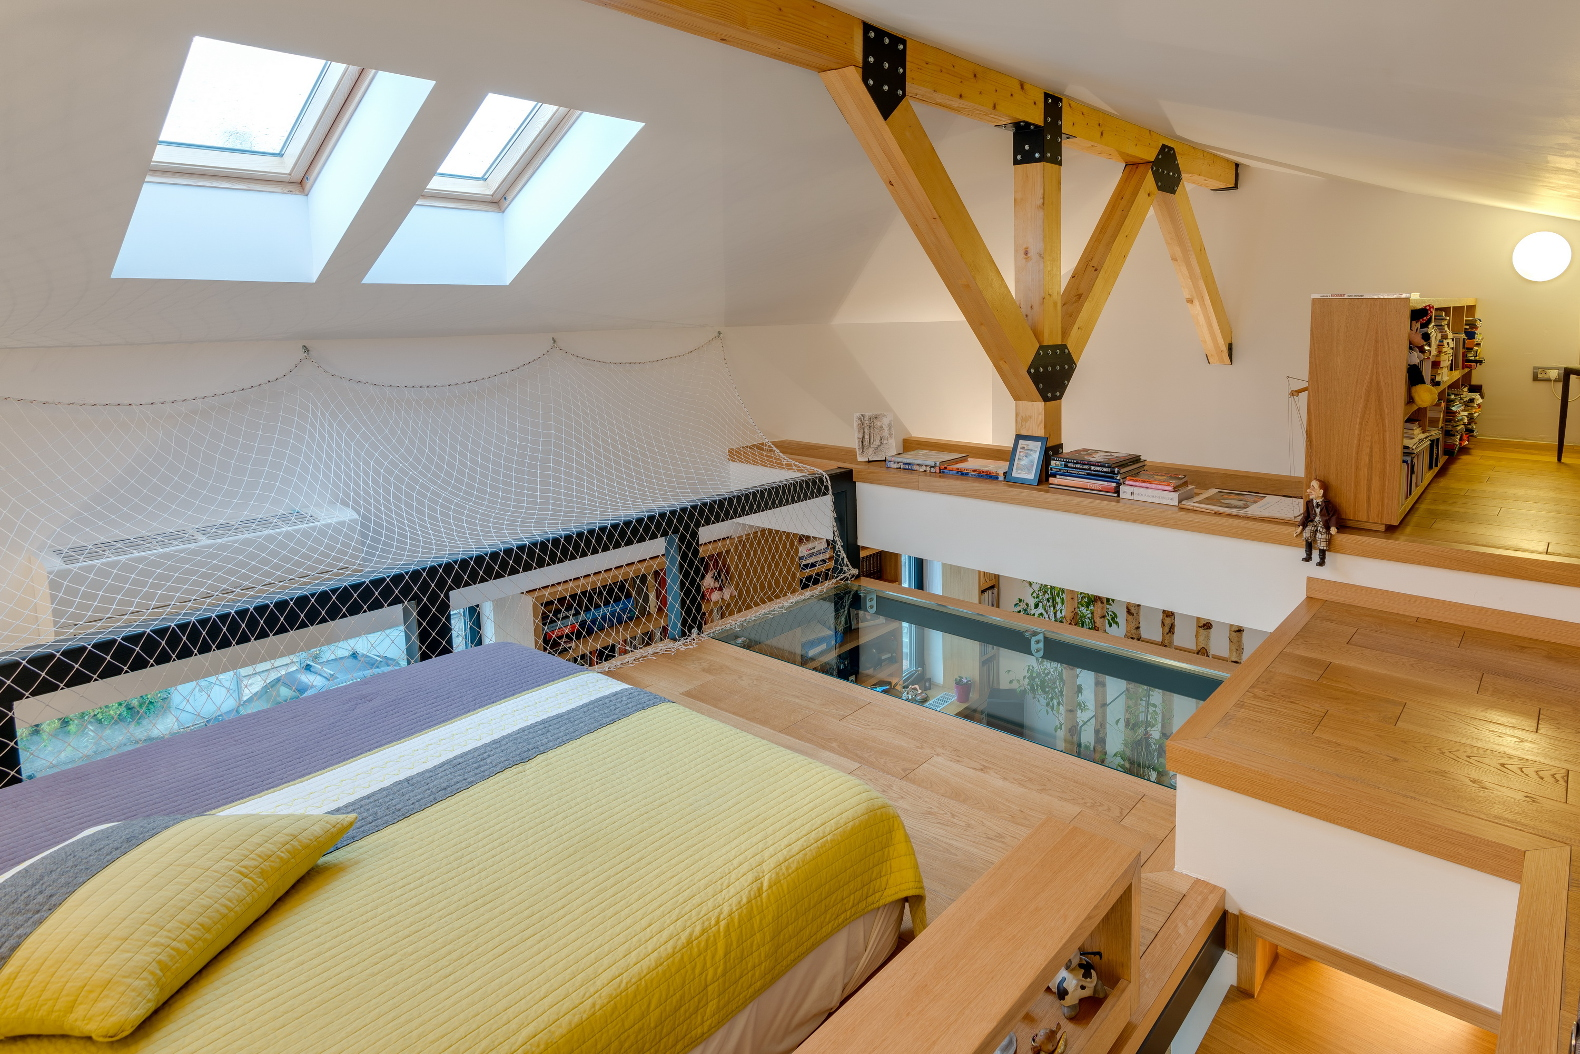 Daring, glass-bottomed loft maximizes space in an edgy Romanian home